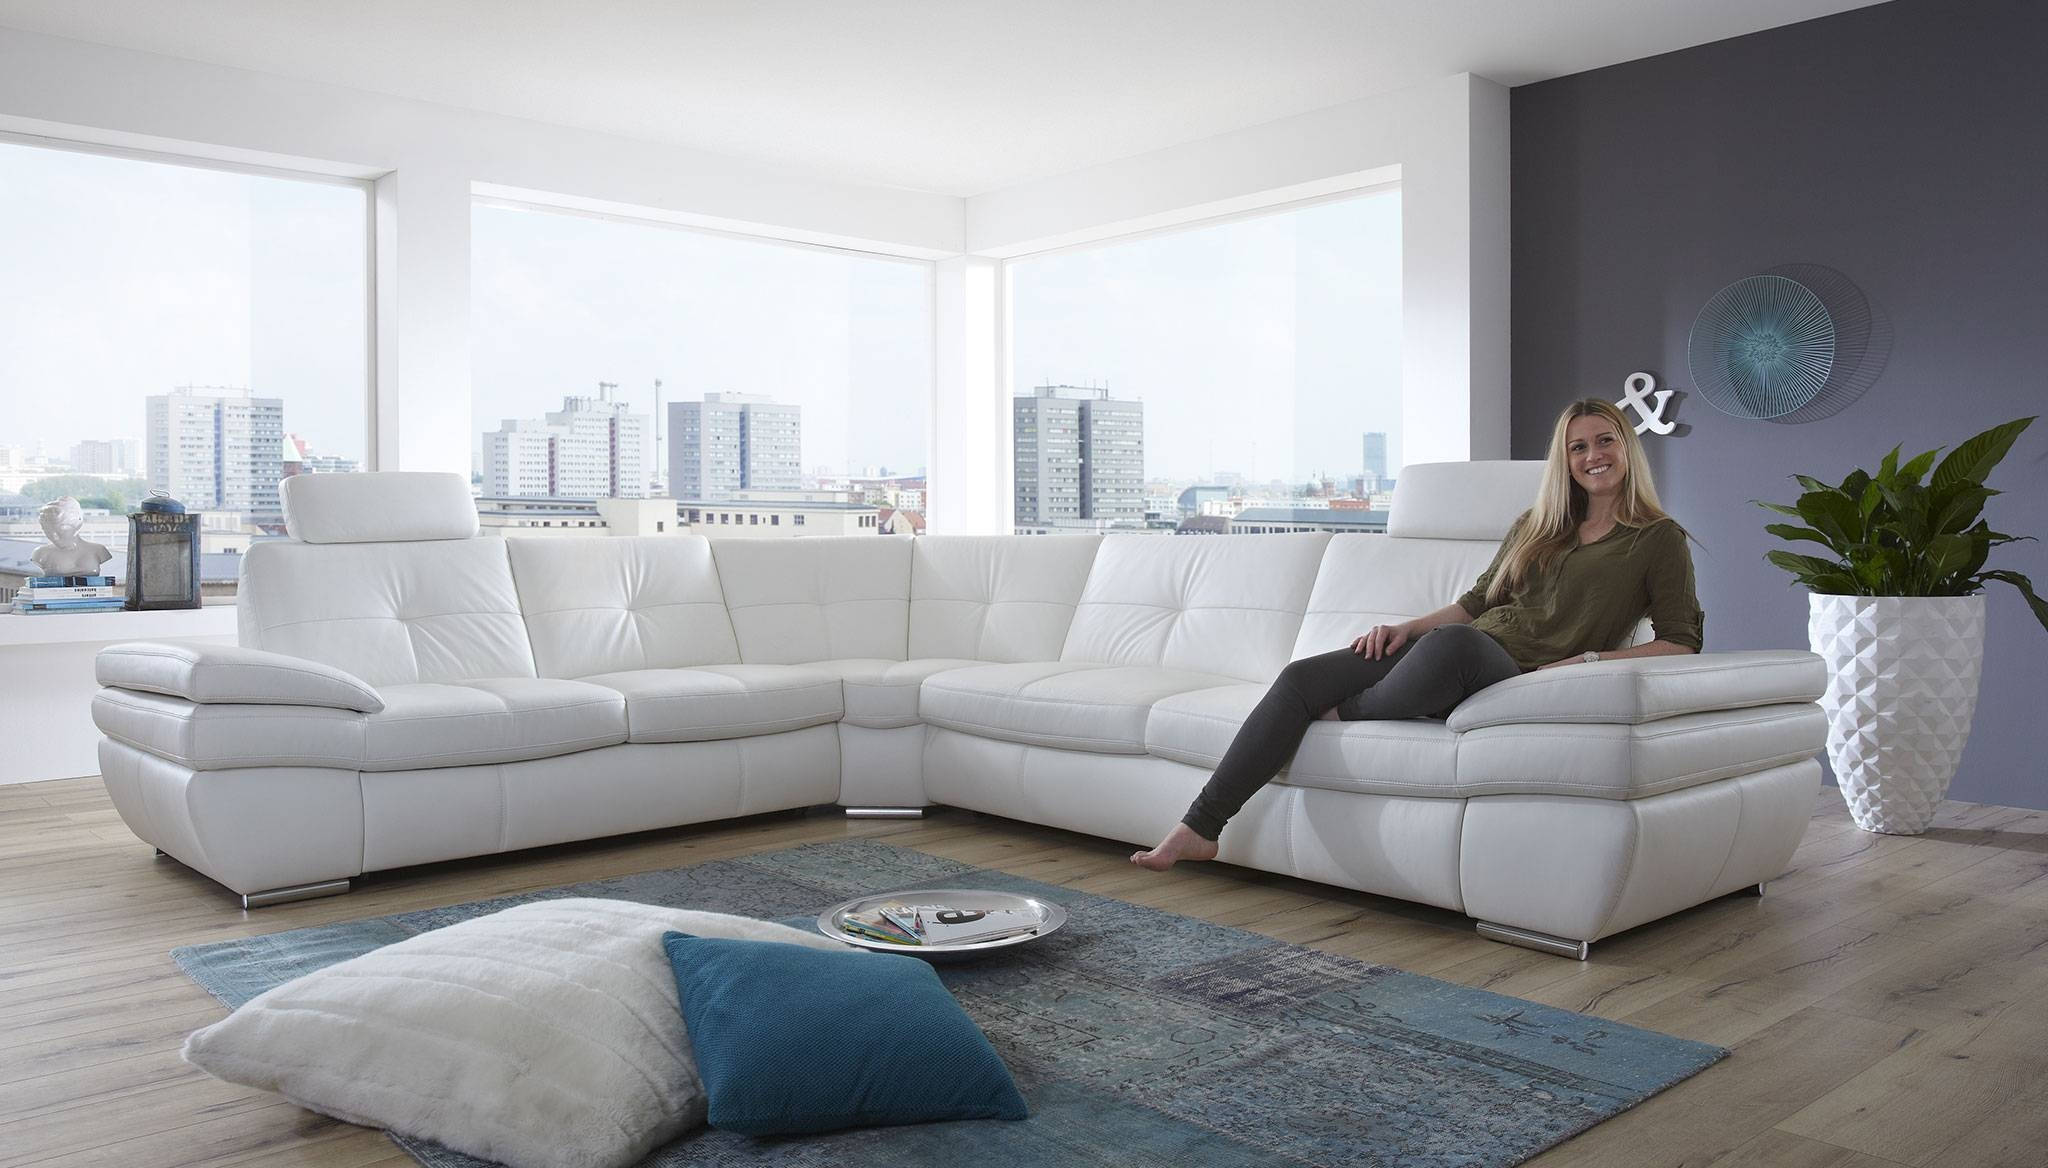 Nordholtz - Modern & Contemporary European Furniture throughout European Sectional Sofas (Image 20 of 30)